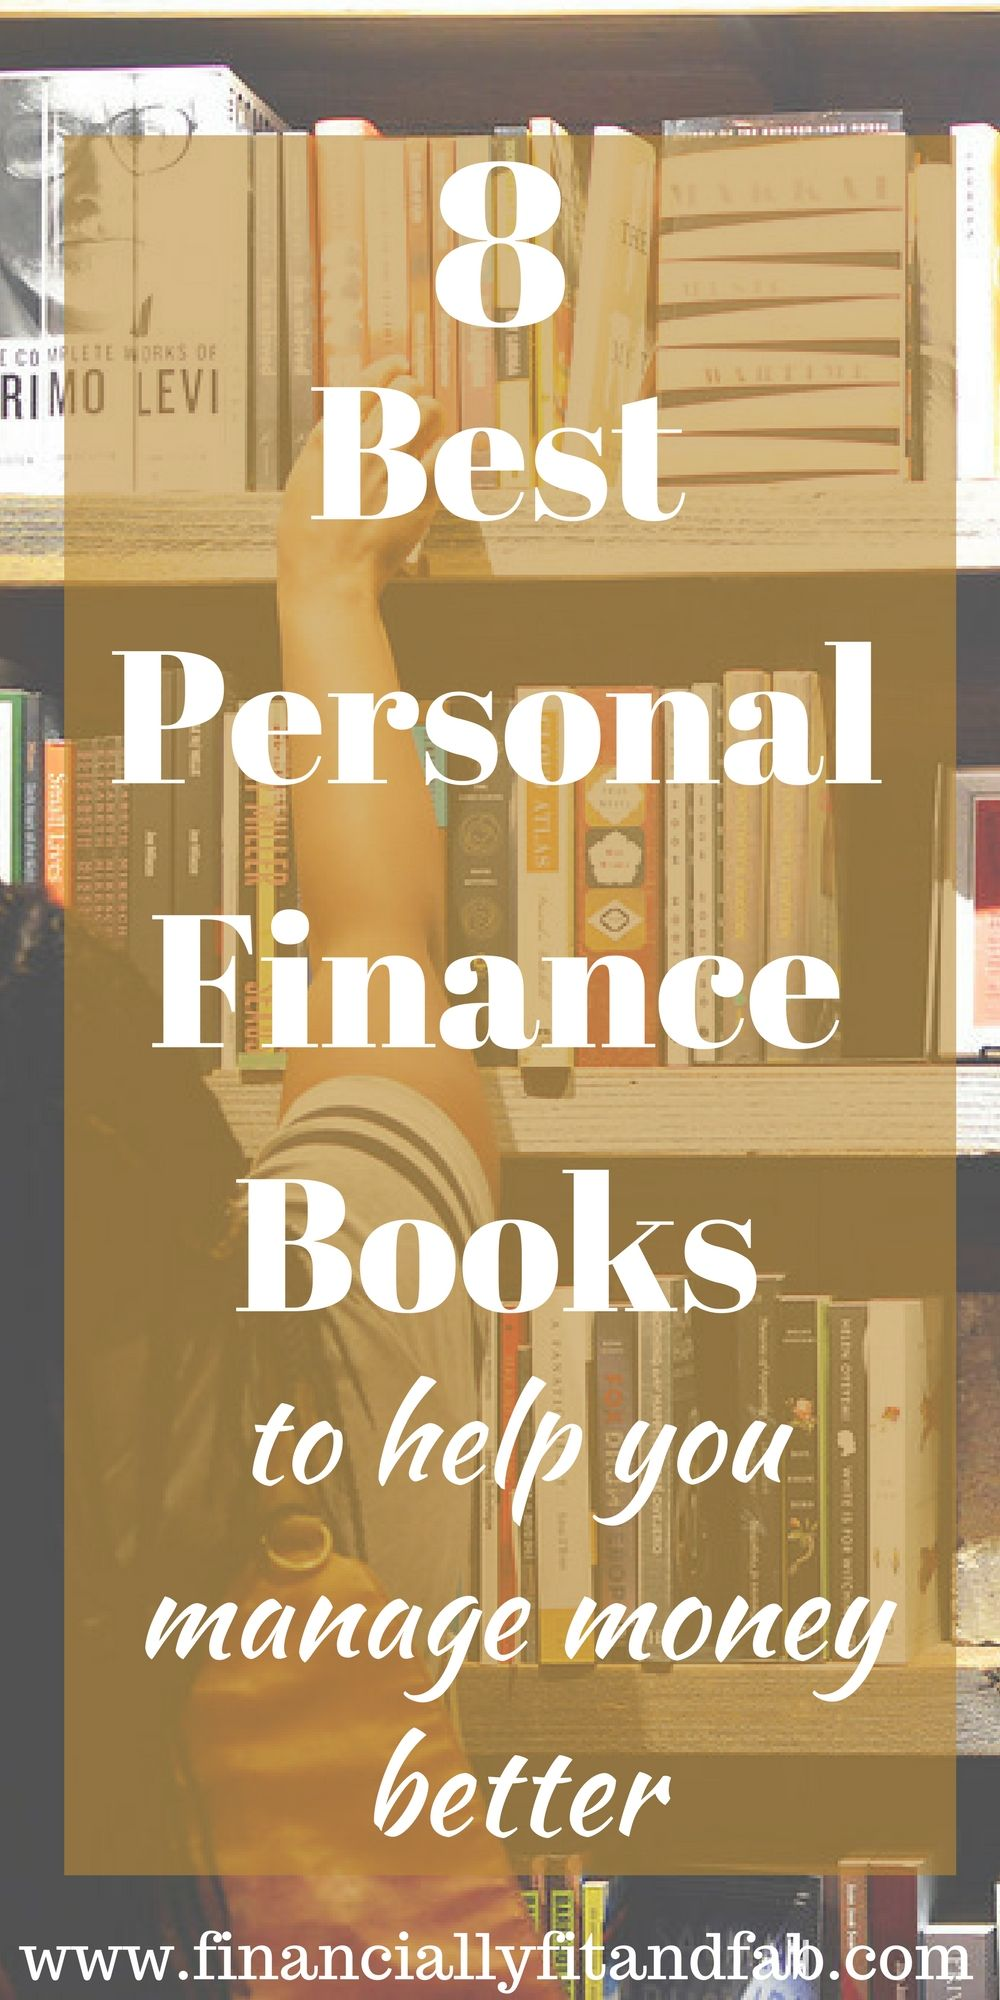 8 personal finance books that will help you manage money better